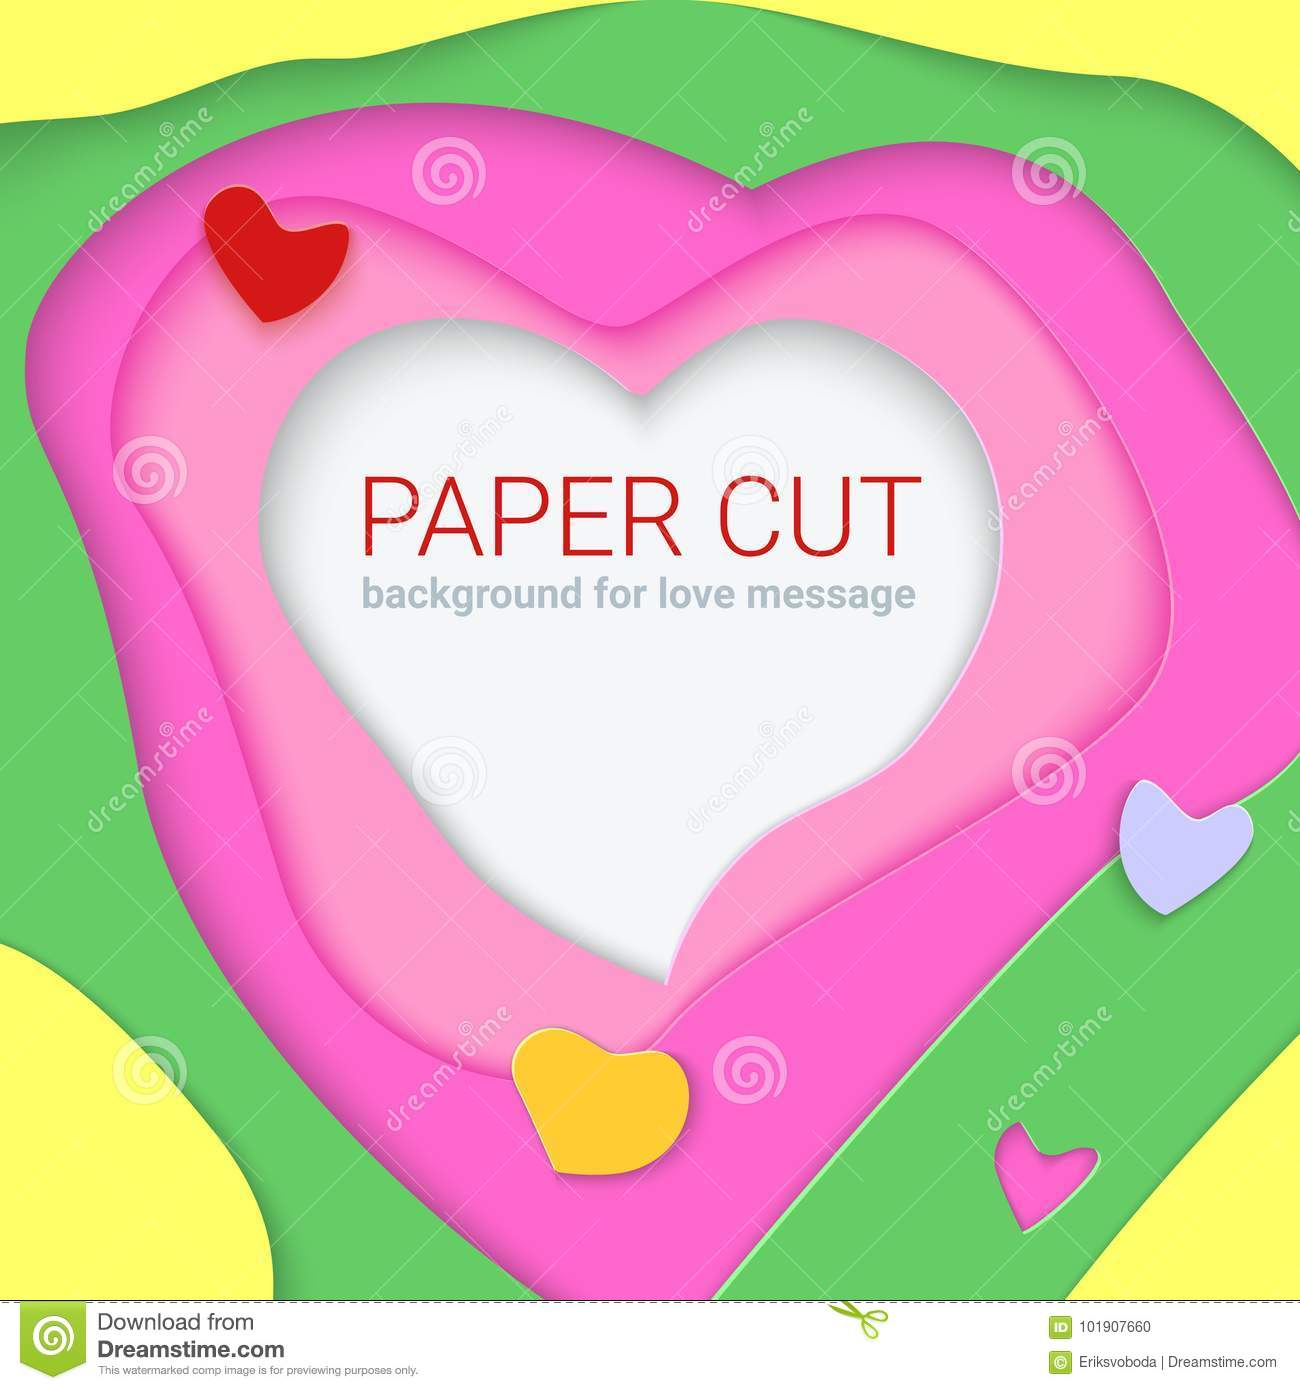 Bright Templates With Paper Cut Shapes Modern Abstract Design 3d